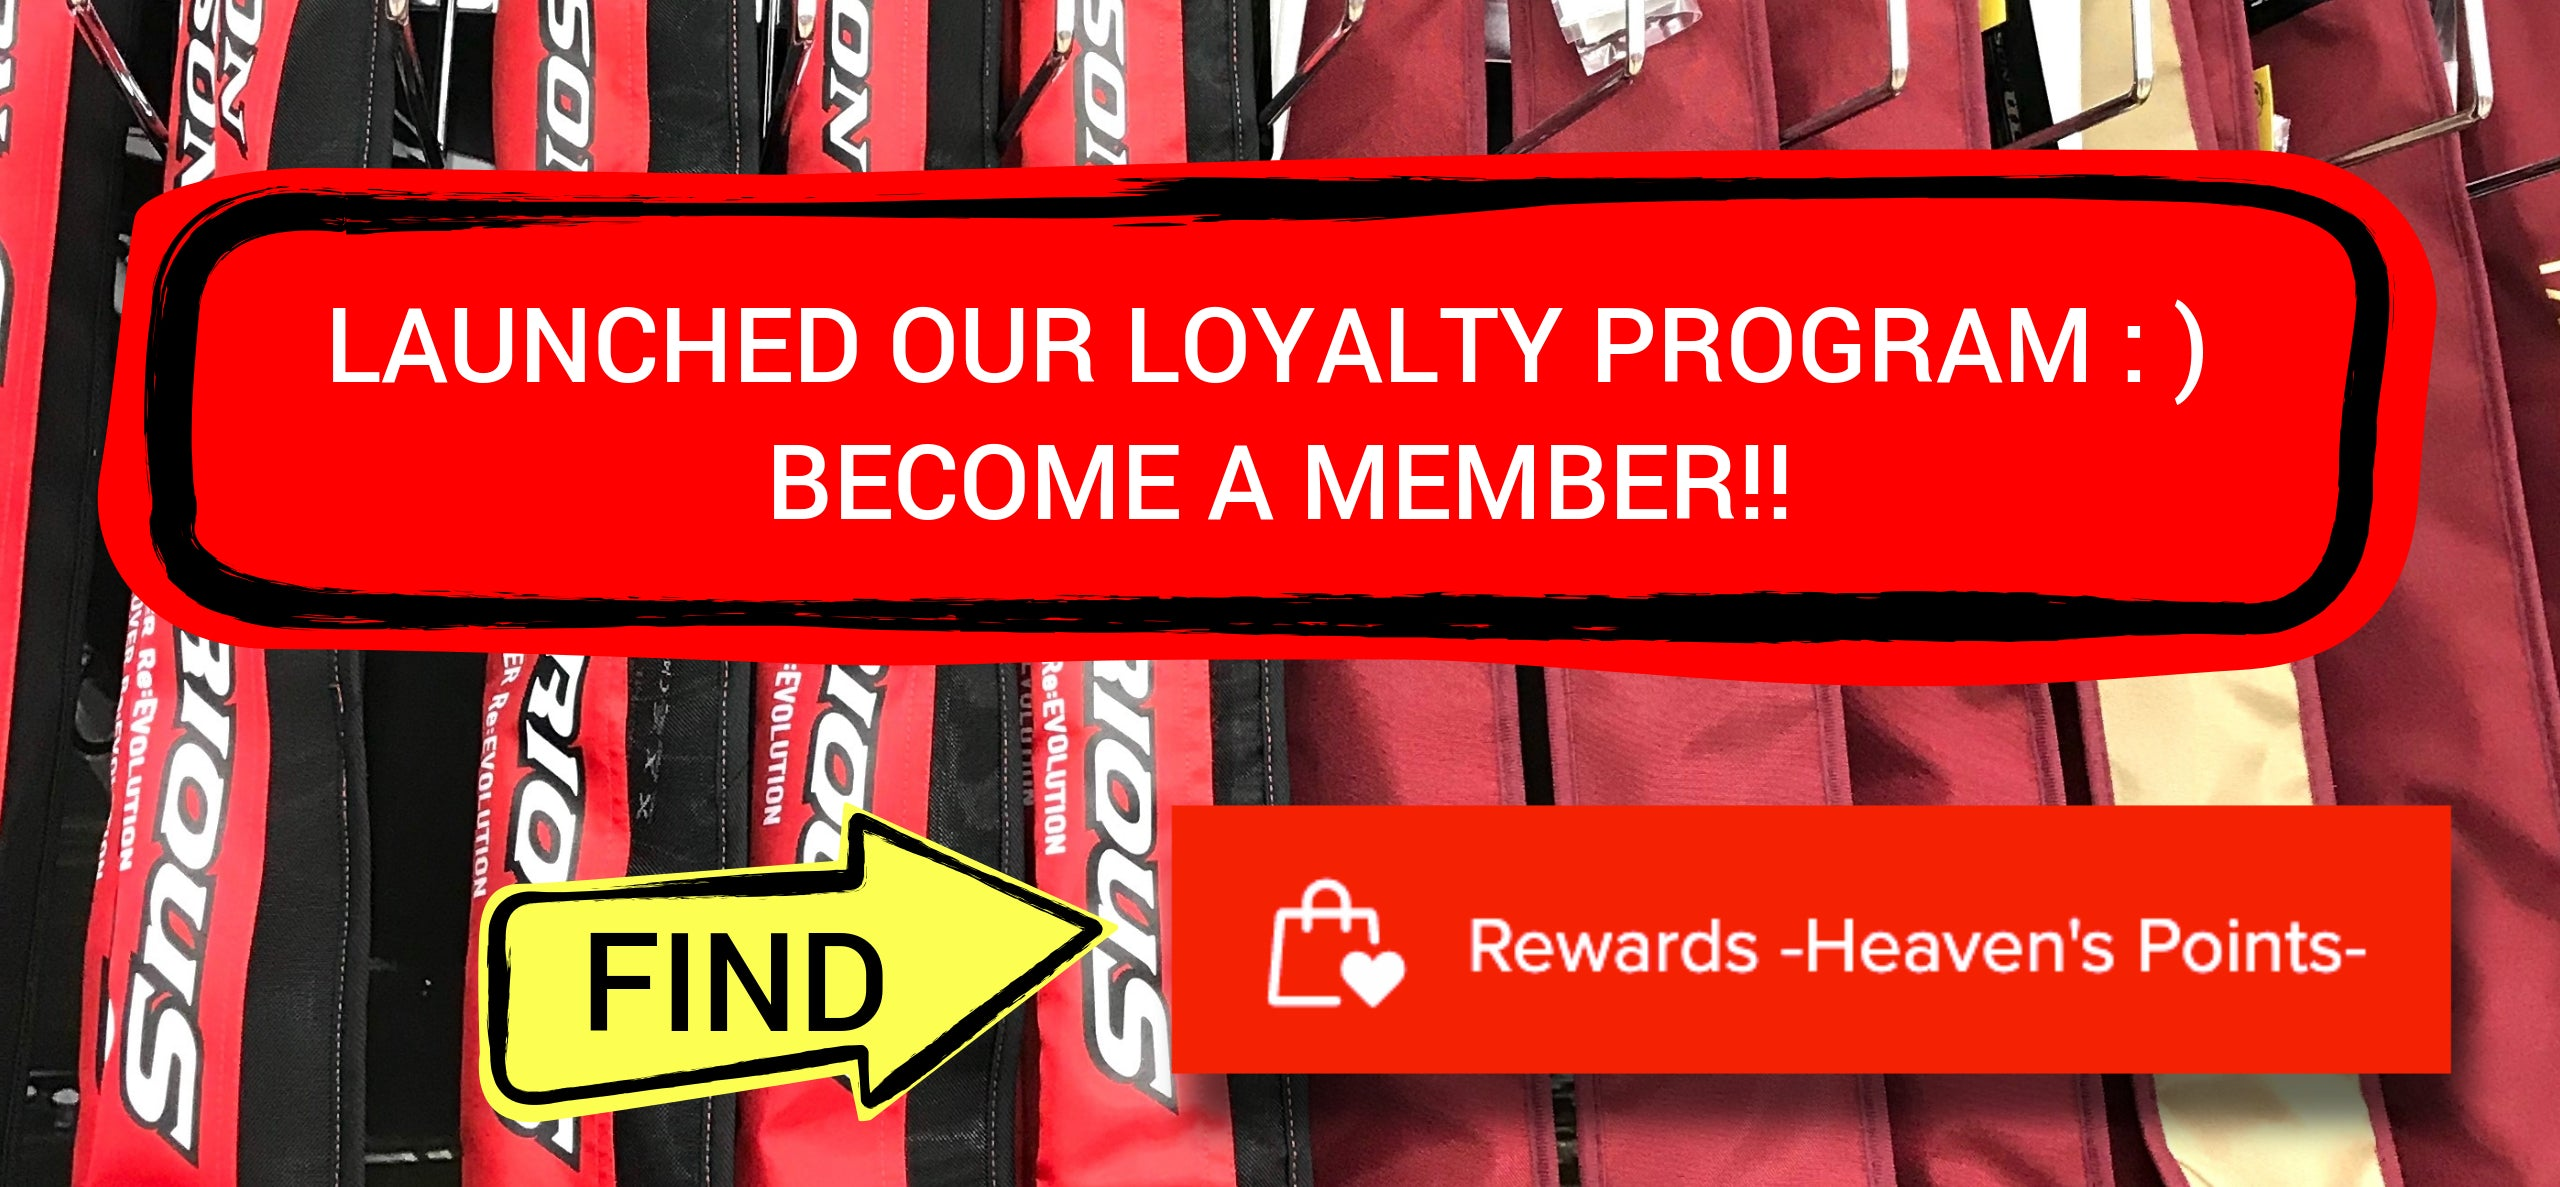 Loyalty Program - Earn Heaven's Points -